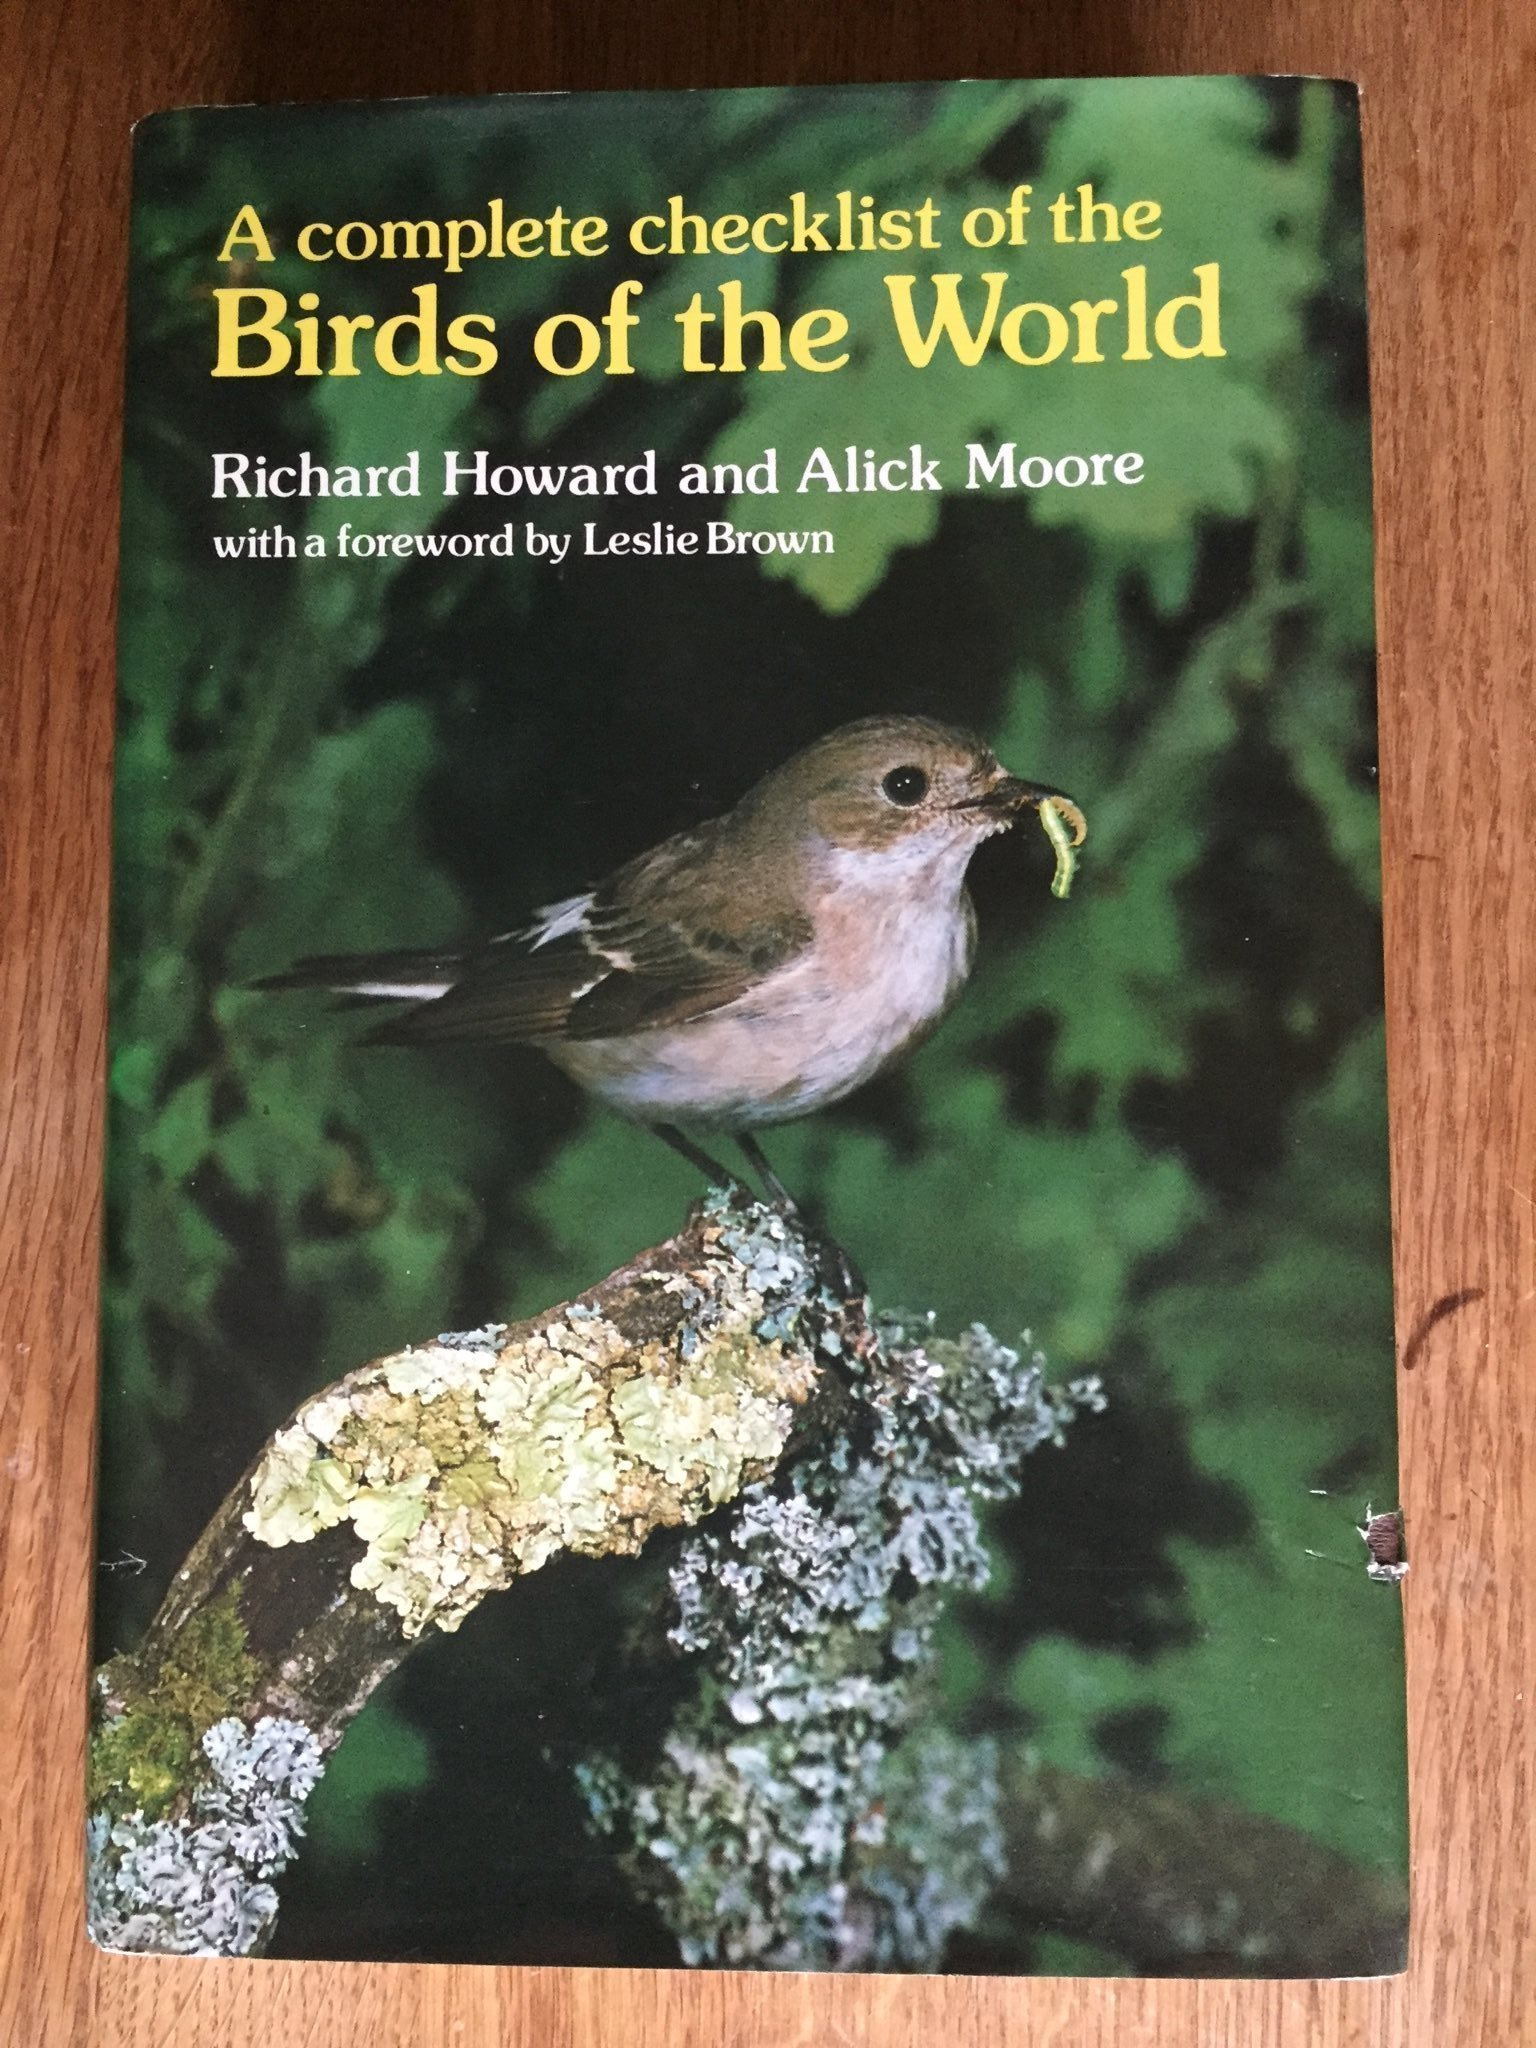 A complete checklist of the Birds of the World